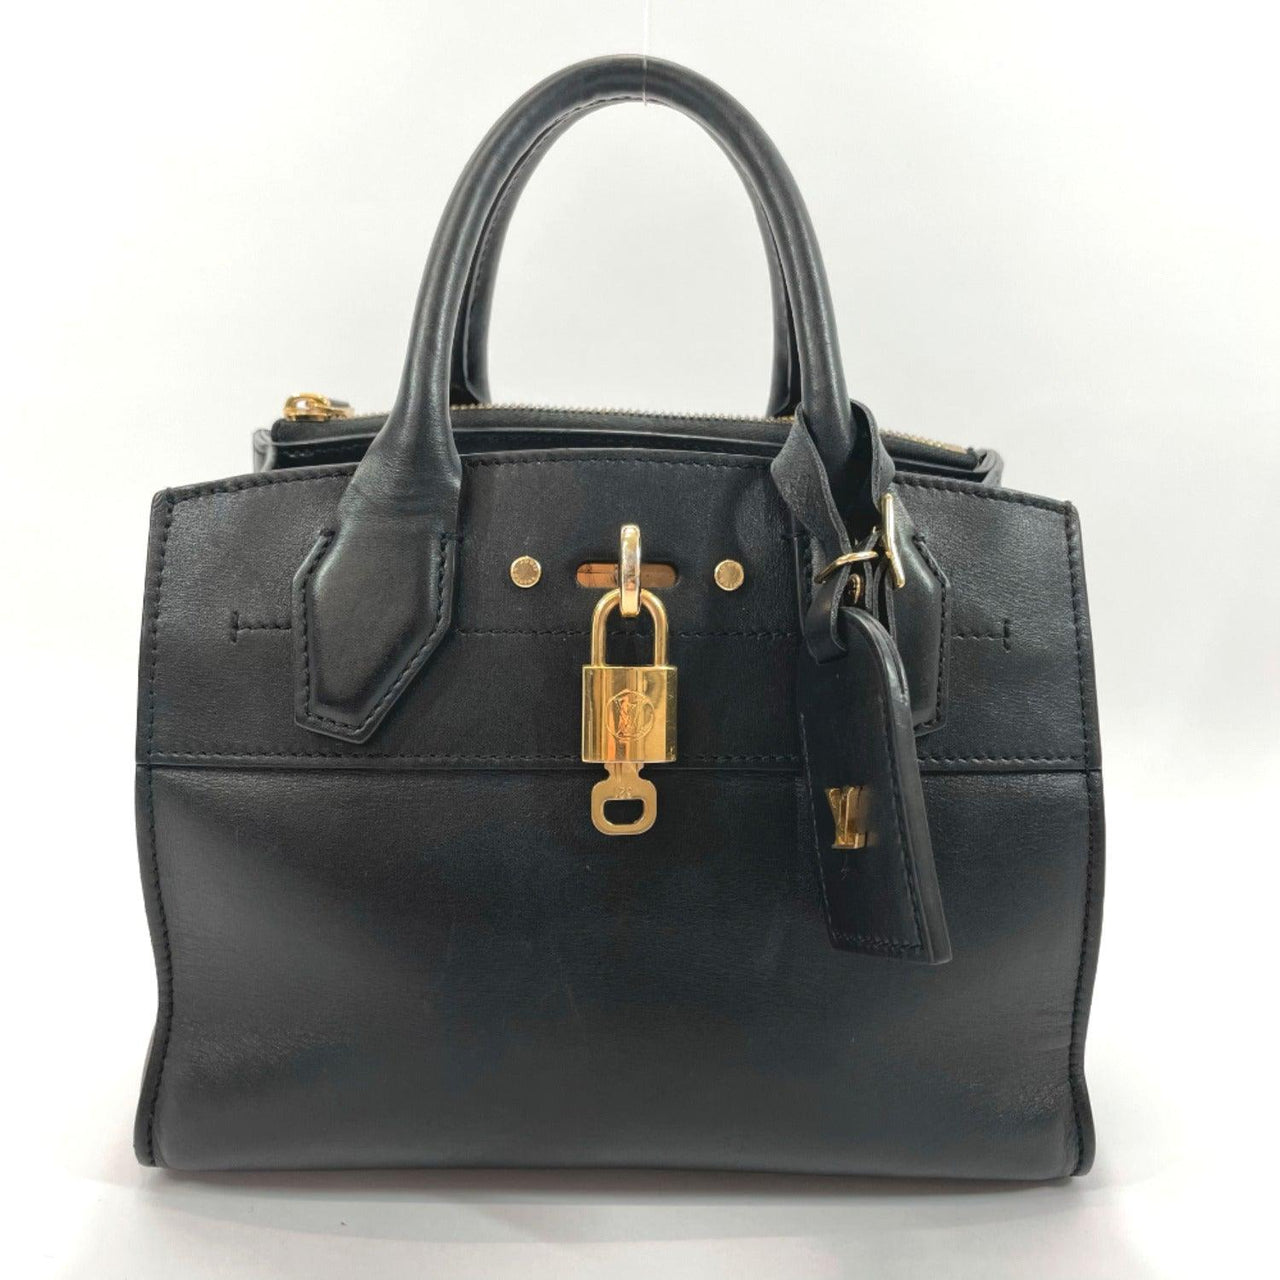 LOUIS VUITTON Handbag M51028 City Steamer PM Calfskin black Women Used